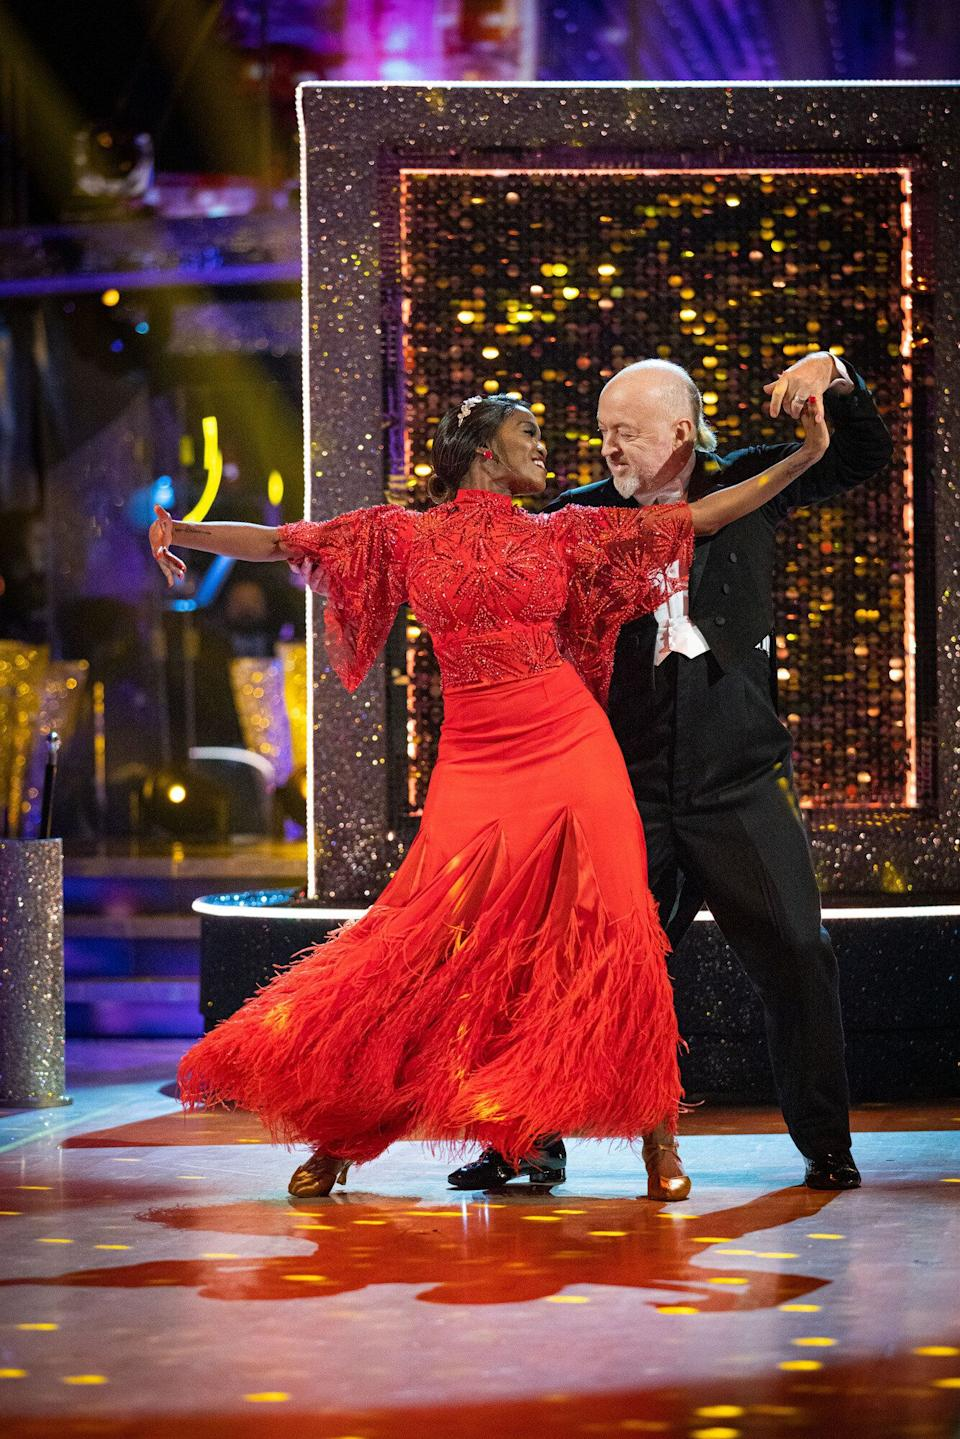 Oti Mabuse and Bill Bailey on the Strictly dance floor last year (Photo: BBC / Guy Levy)